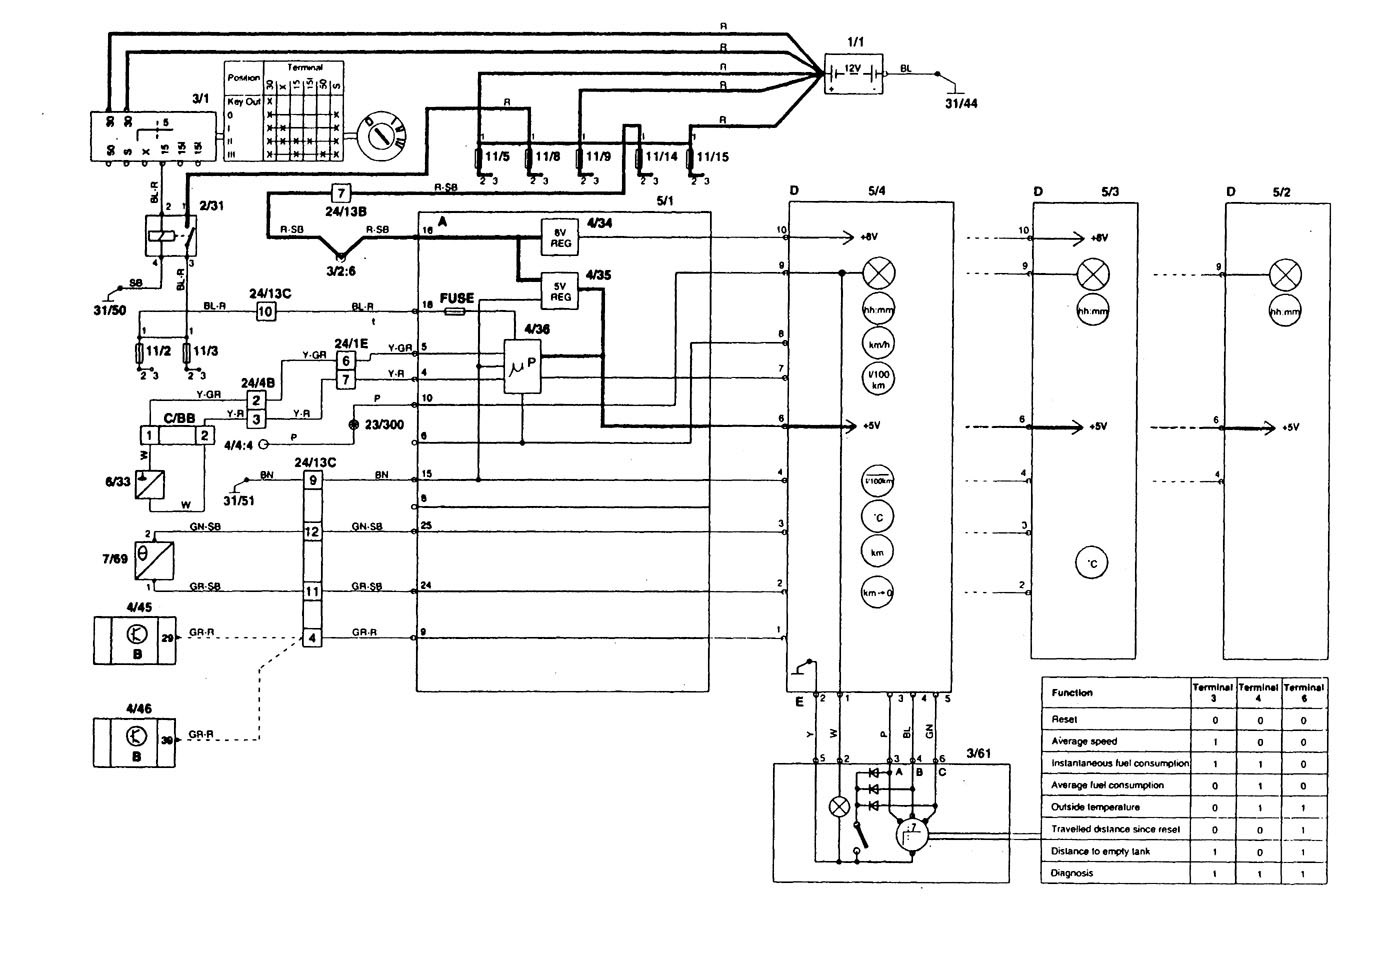 2000 volvo v70 radio wiring diagram three way switch two lights s90 diagrams imageresizertool com